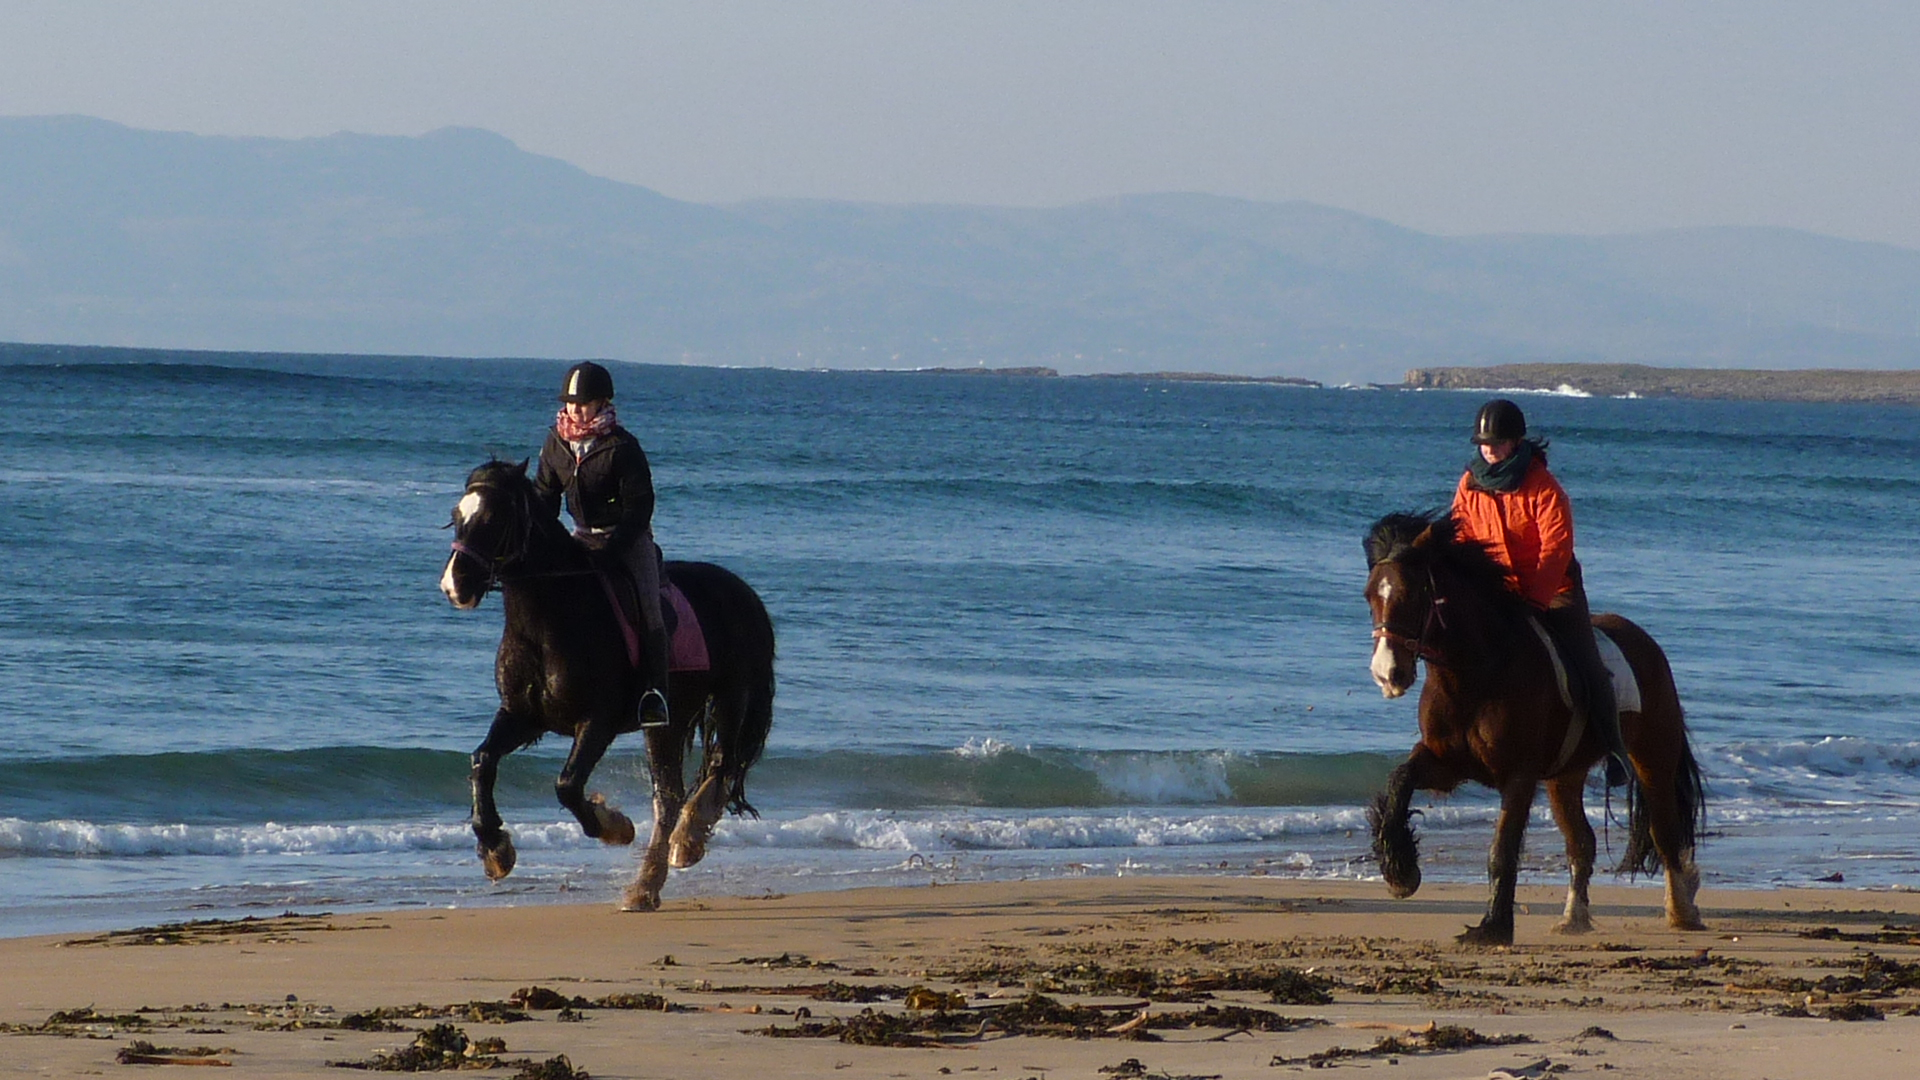 Enjoy horse riding on the beach